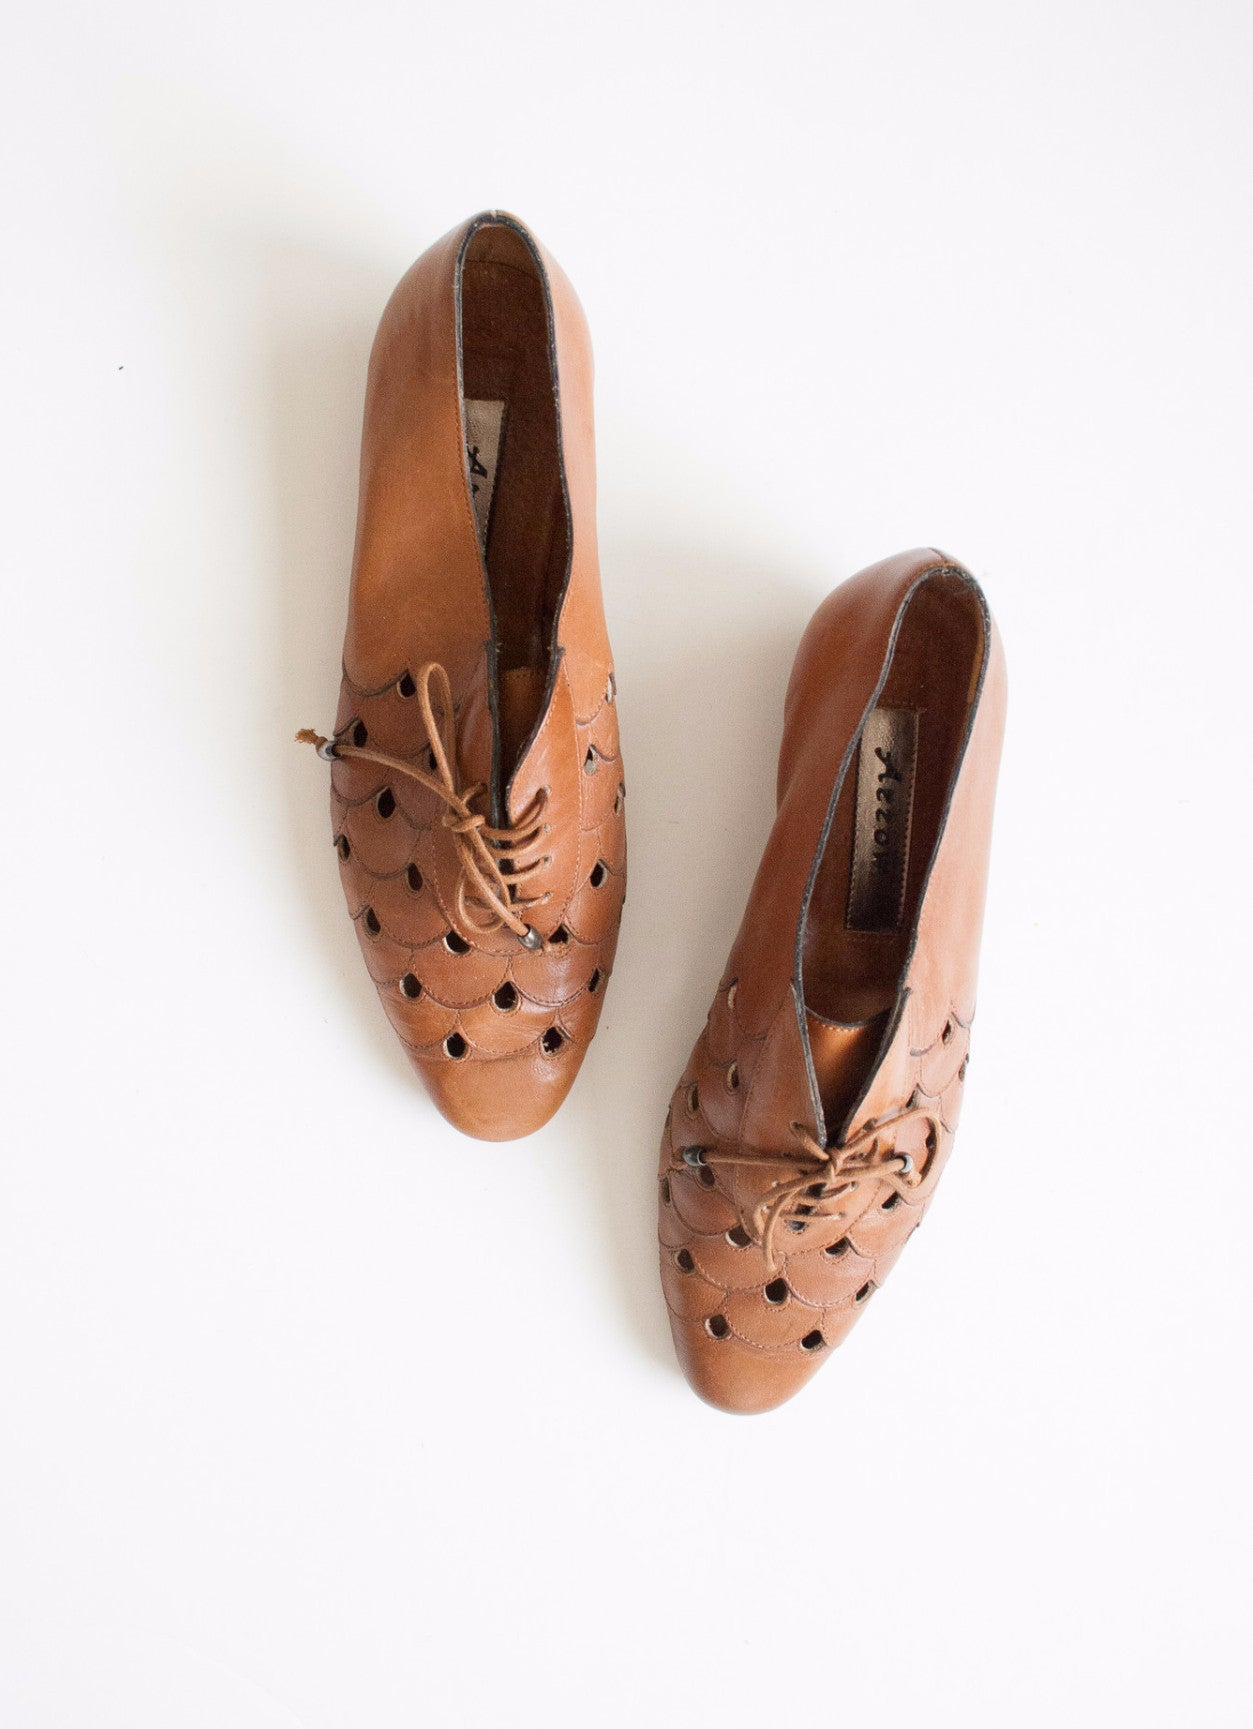 Scaled Cut Out Leather Shoes | 6.5